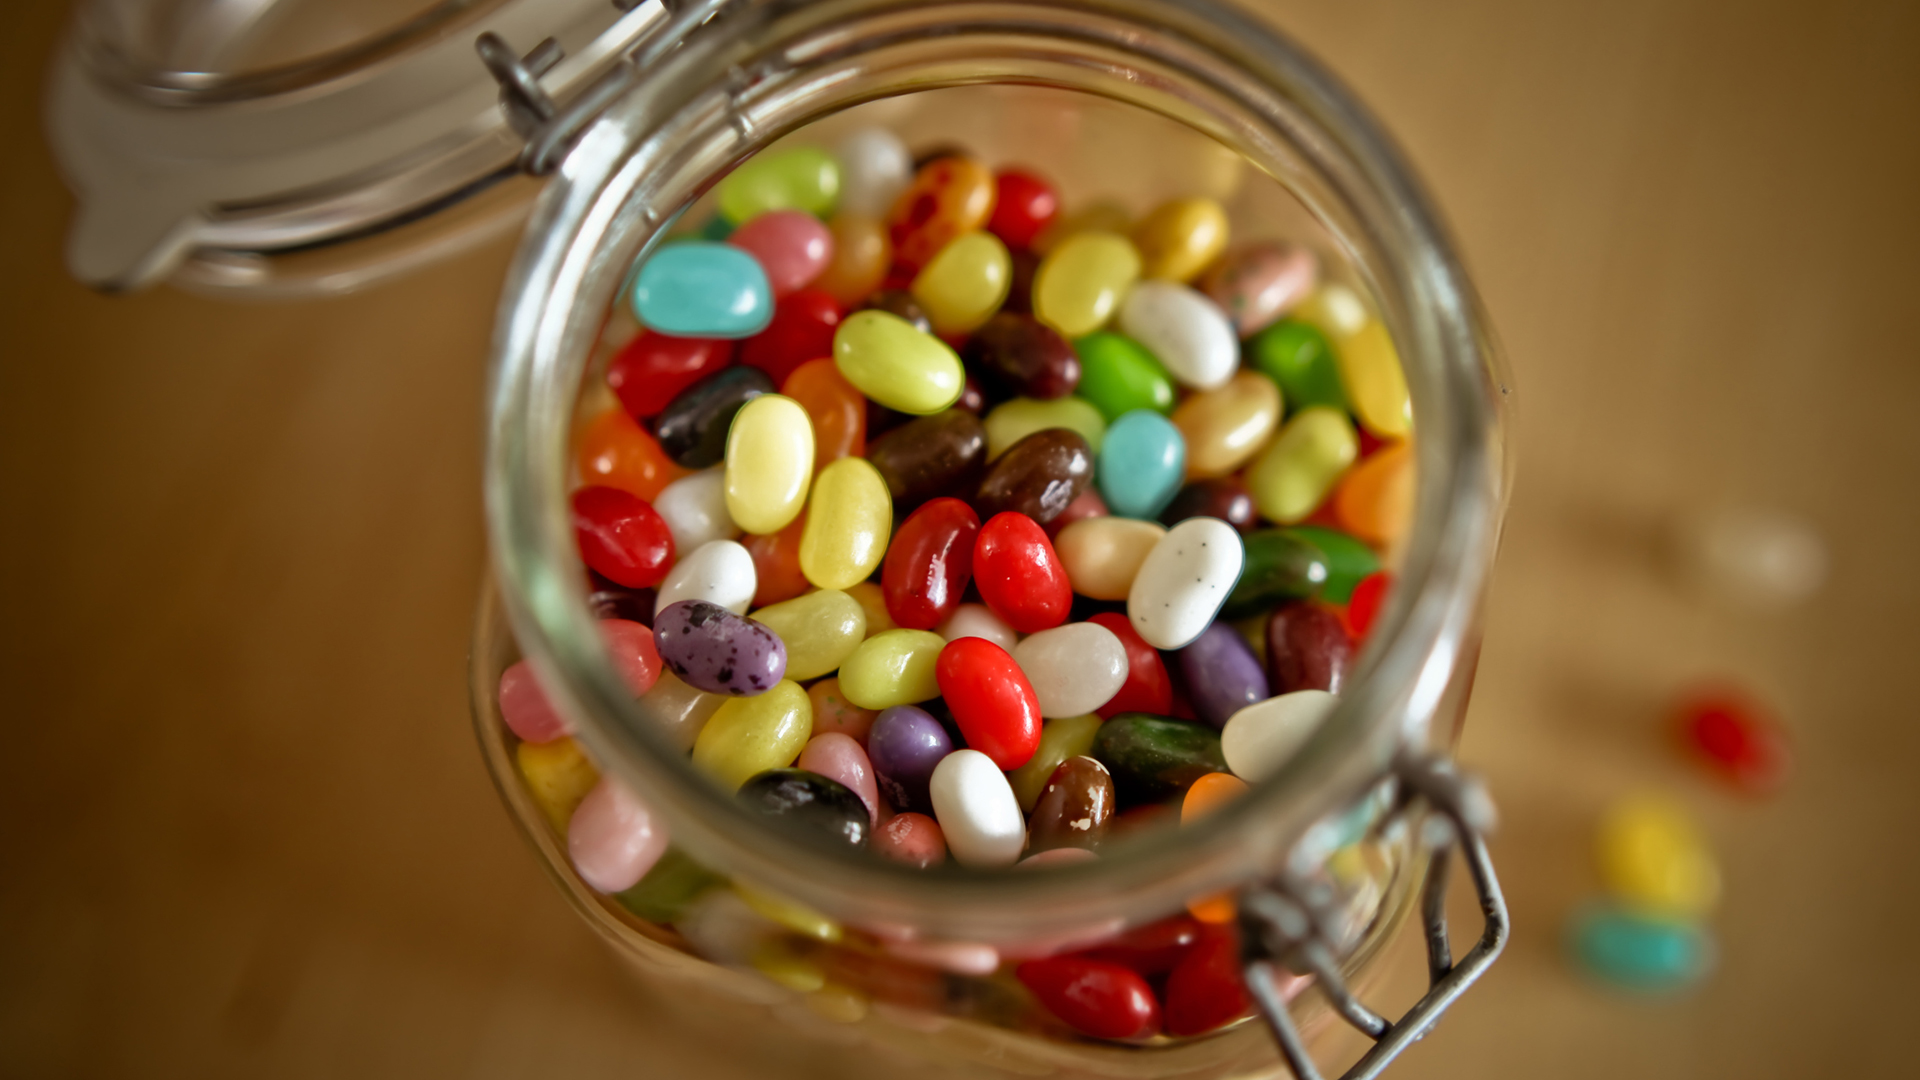 Candy jar | Sheknows.com